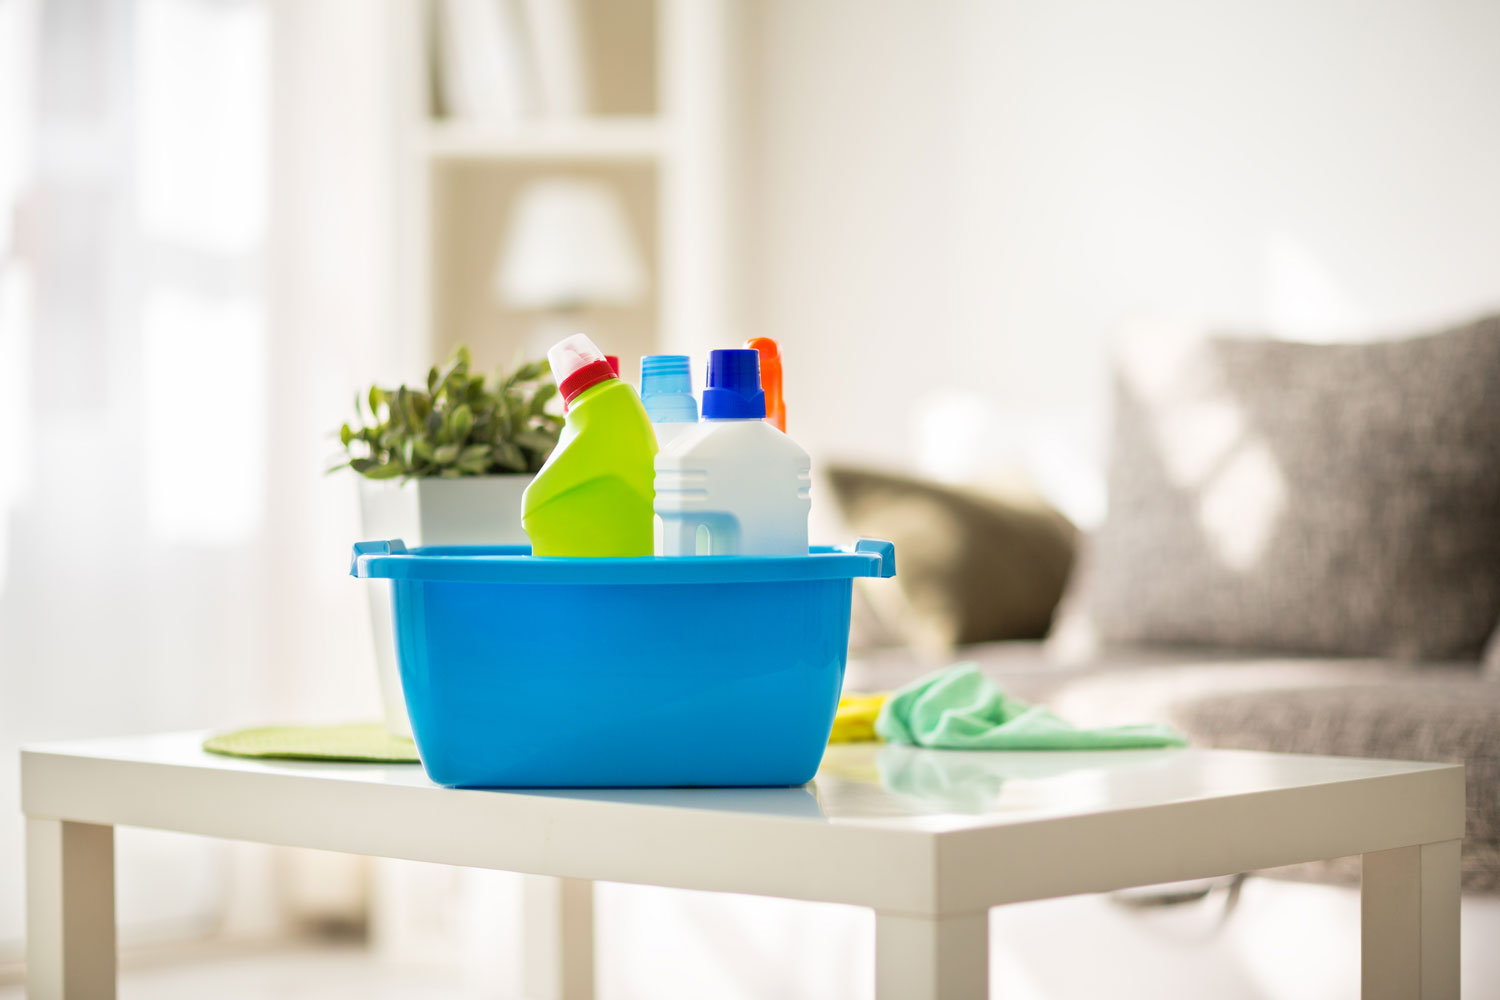 How to clean your house in an environmentally-friendly way